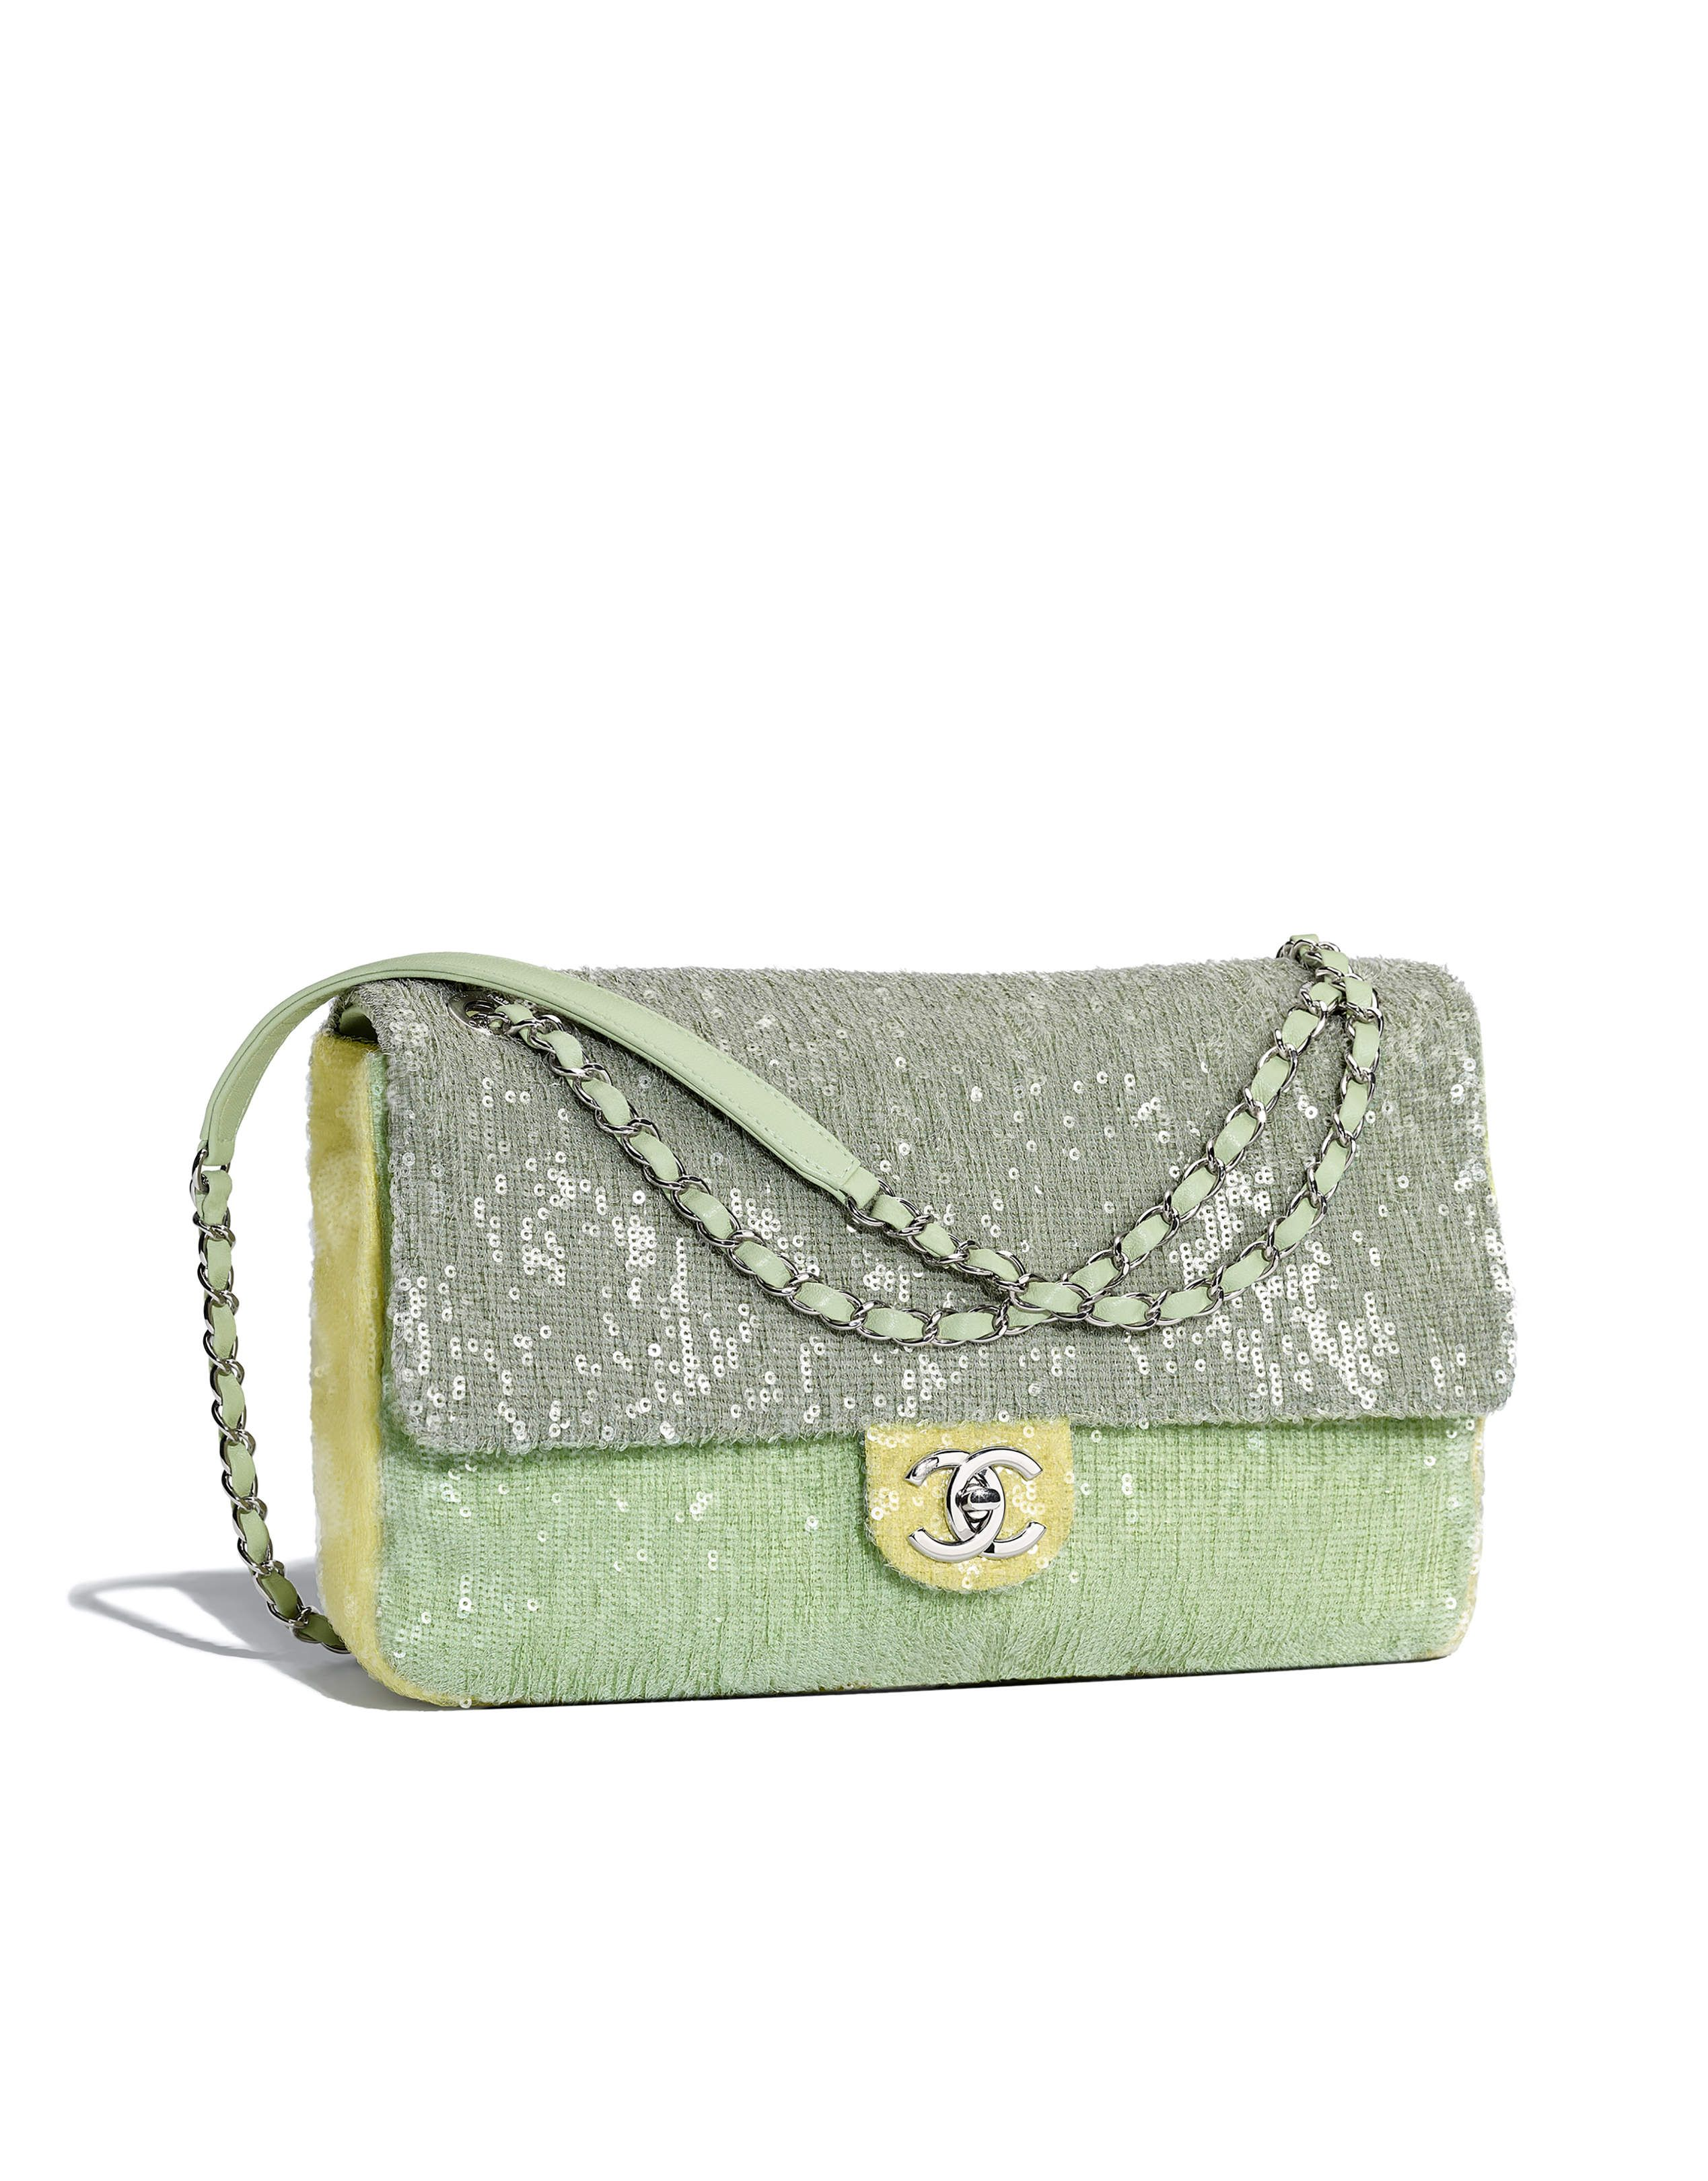 d805fcd2fa08 Chanel - SS2018 | Green, light green & yellow sequin flap bag | BAGS ...